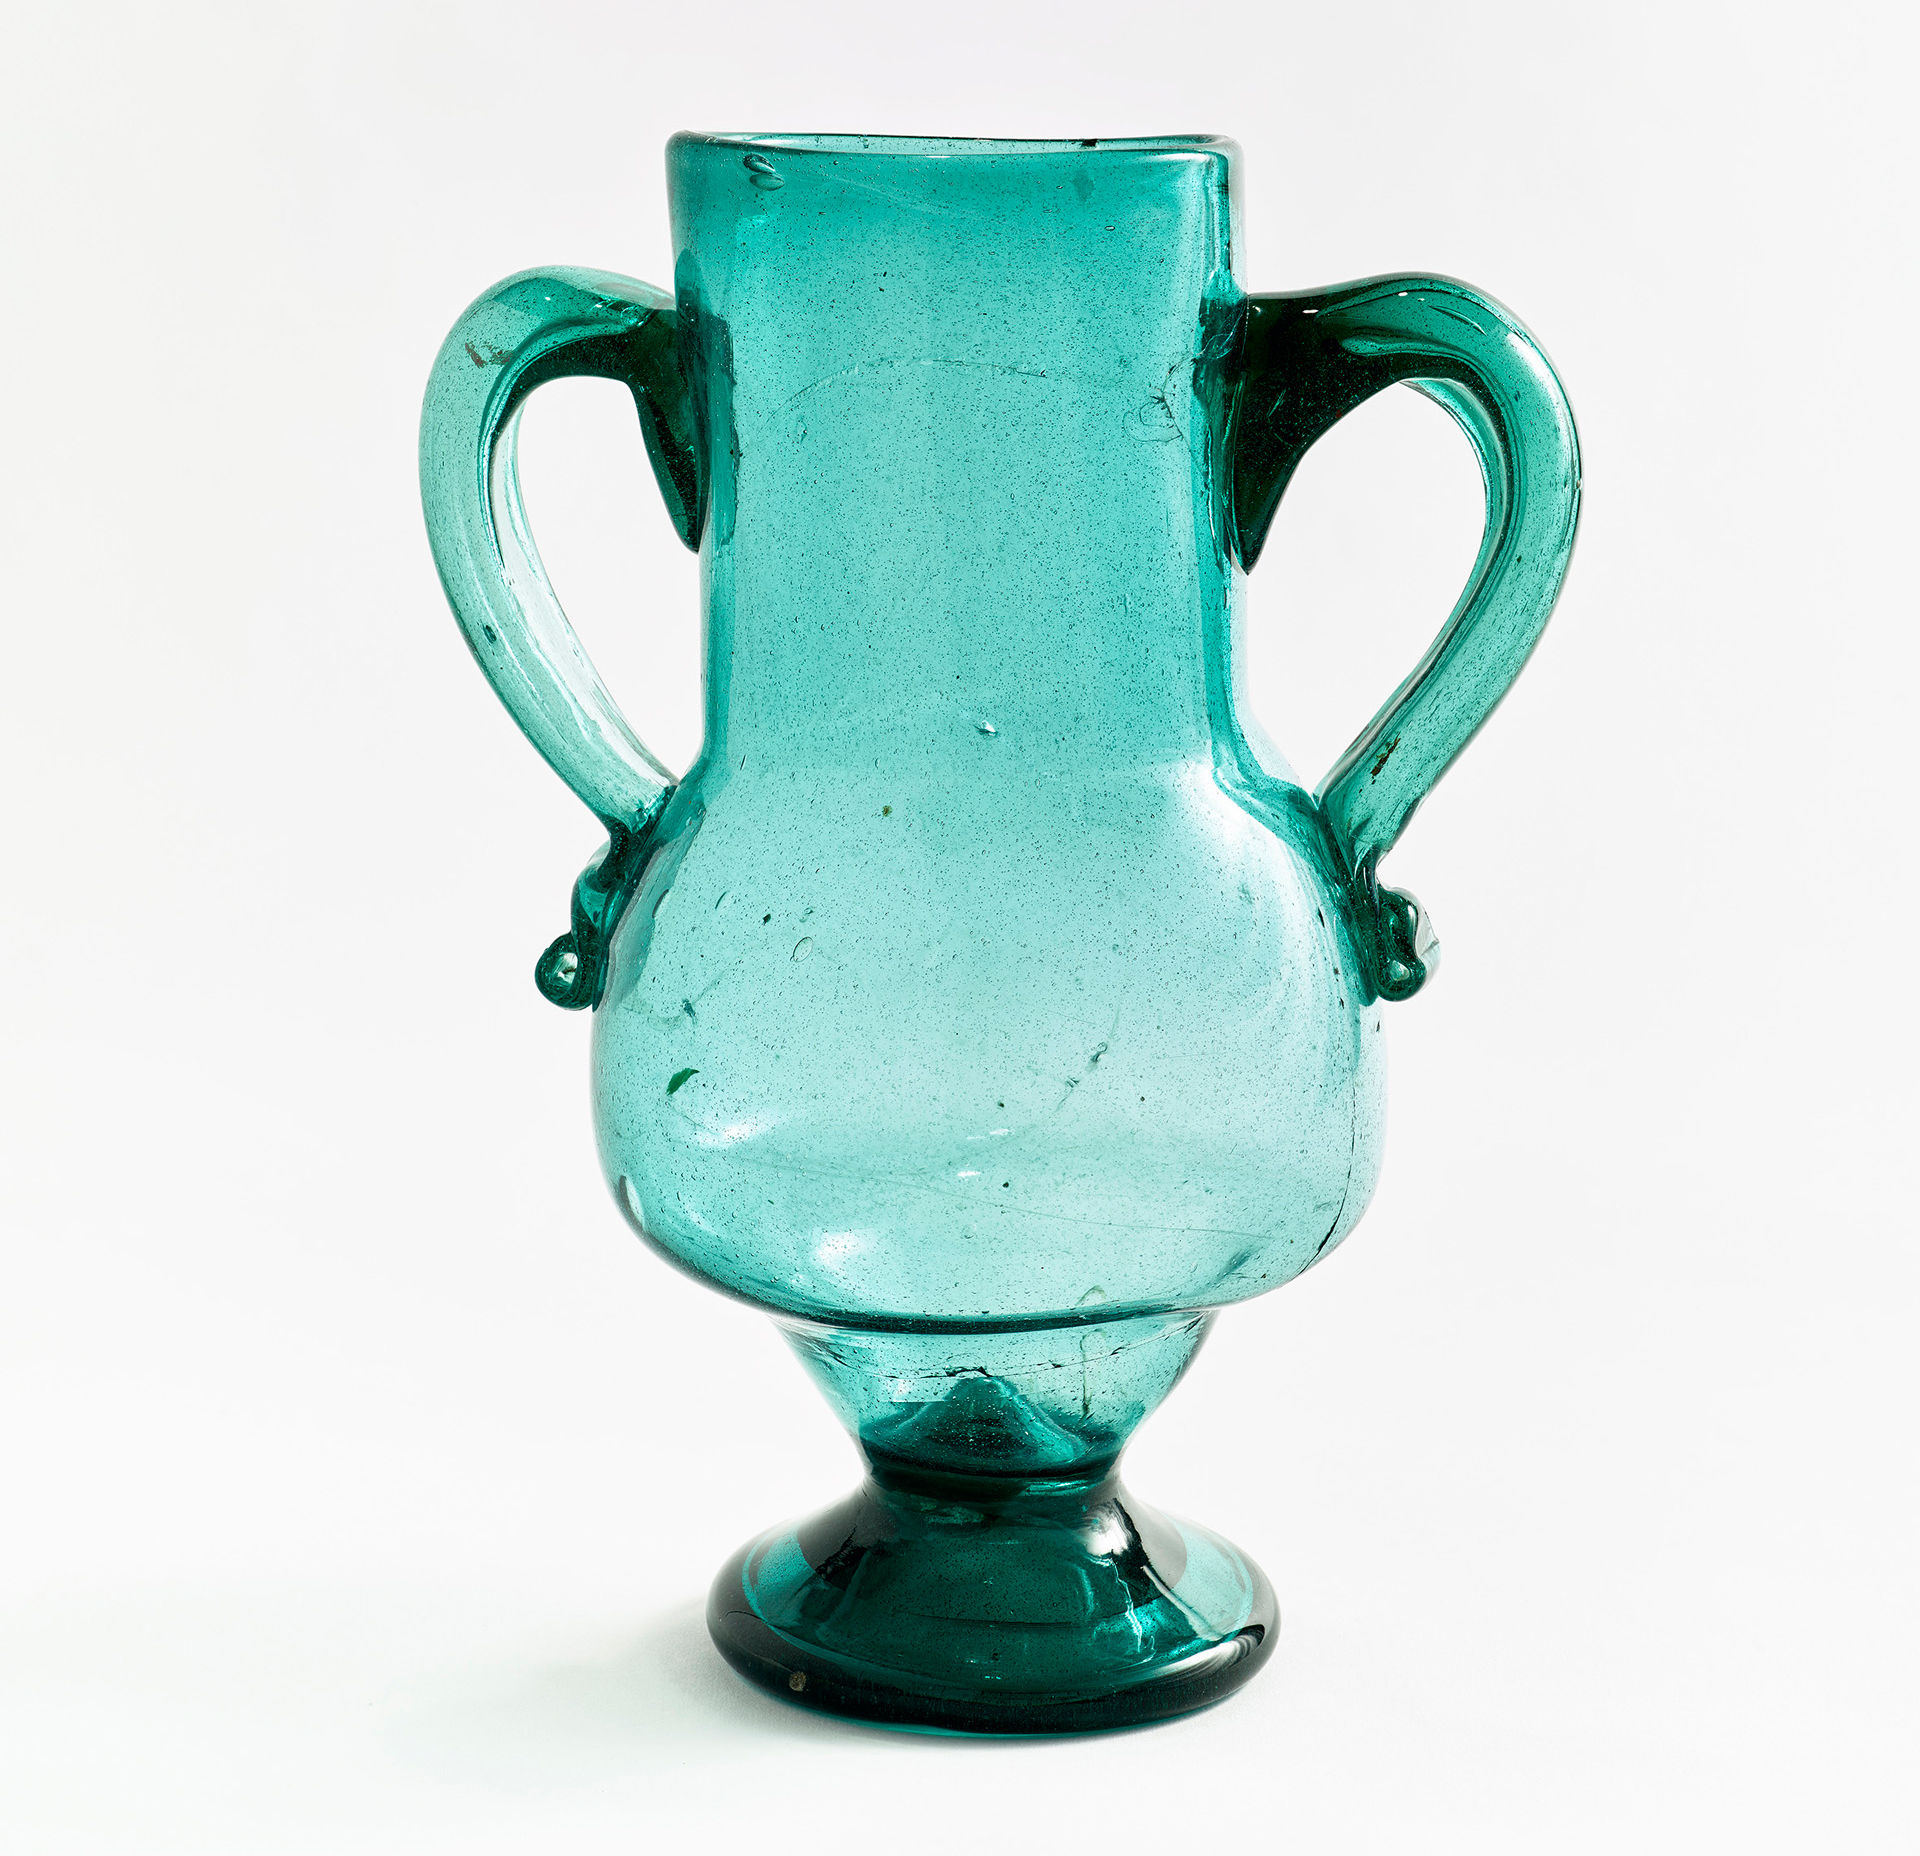 Vase, Andalusia, Spain, early 20th century, Artist Unknown, Musée Matisse, Nice